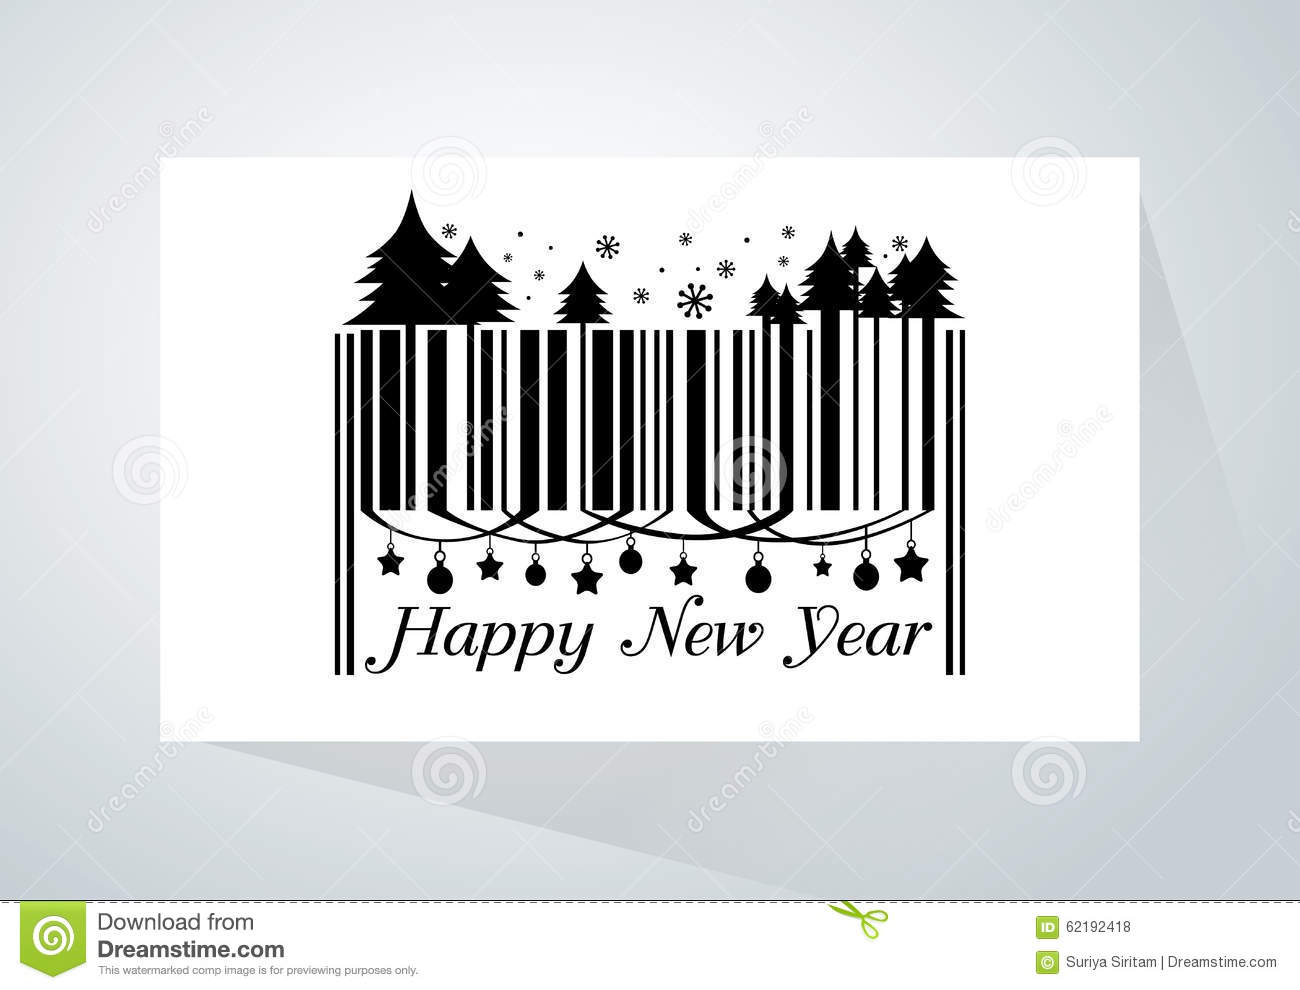 Happy new year barcode stock vector. Illustration of goods - 62192418